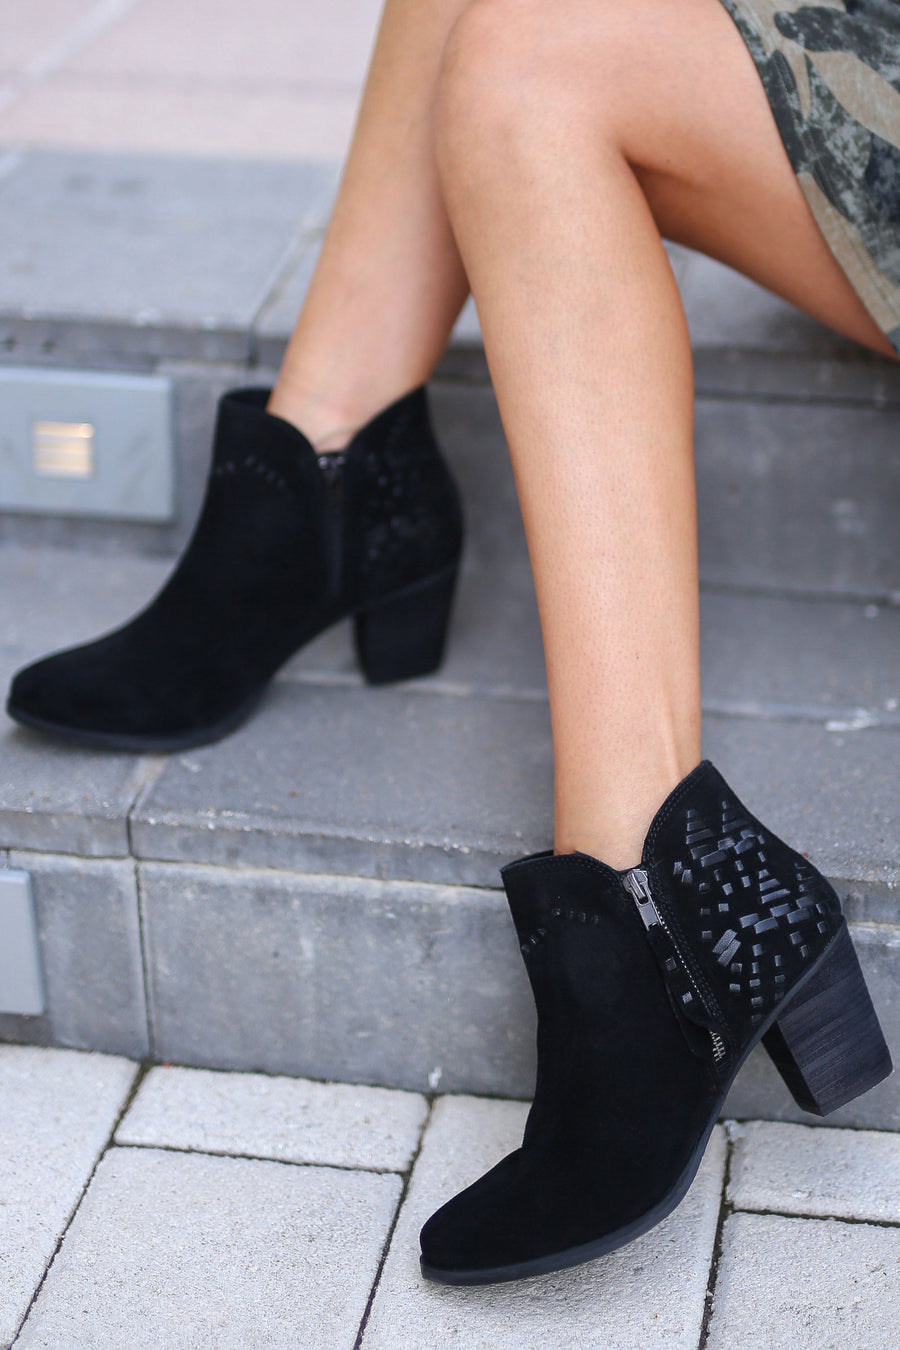 NAUGHTY MONKEY Lupina Suede Booties - Black ankle boots with details on back and heel closet candy boutique 5